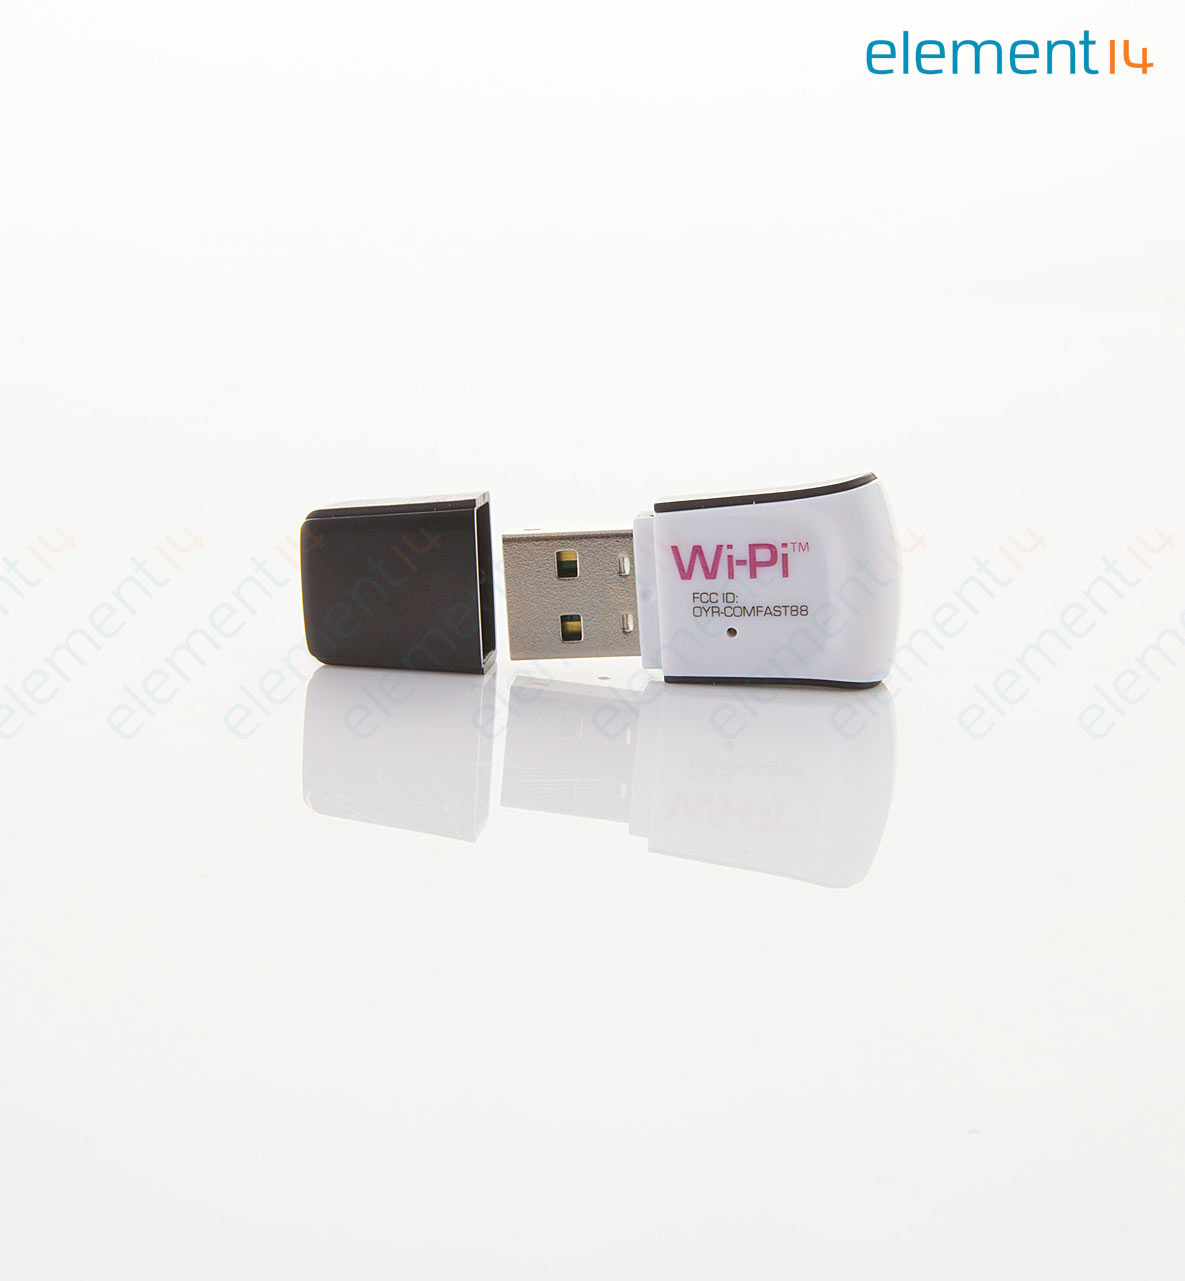 WIPI - WLAN USB Module, IEEE 802 11n, Connect Raspberry Pi to WiFi Network,  Built in Smart Antenna